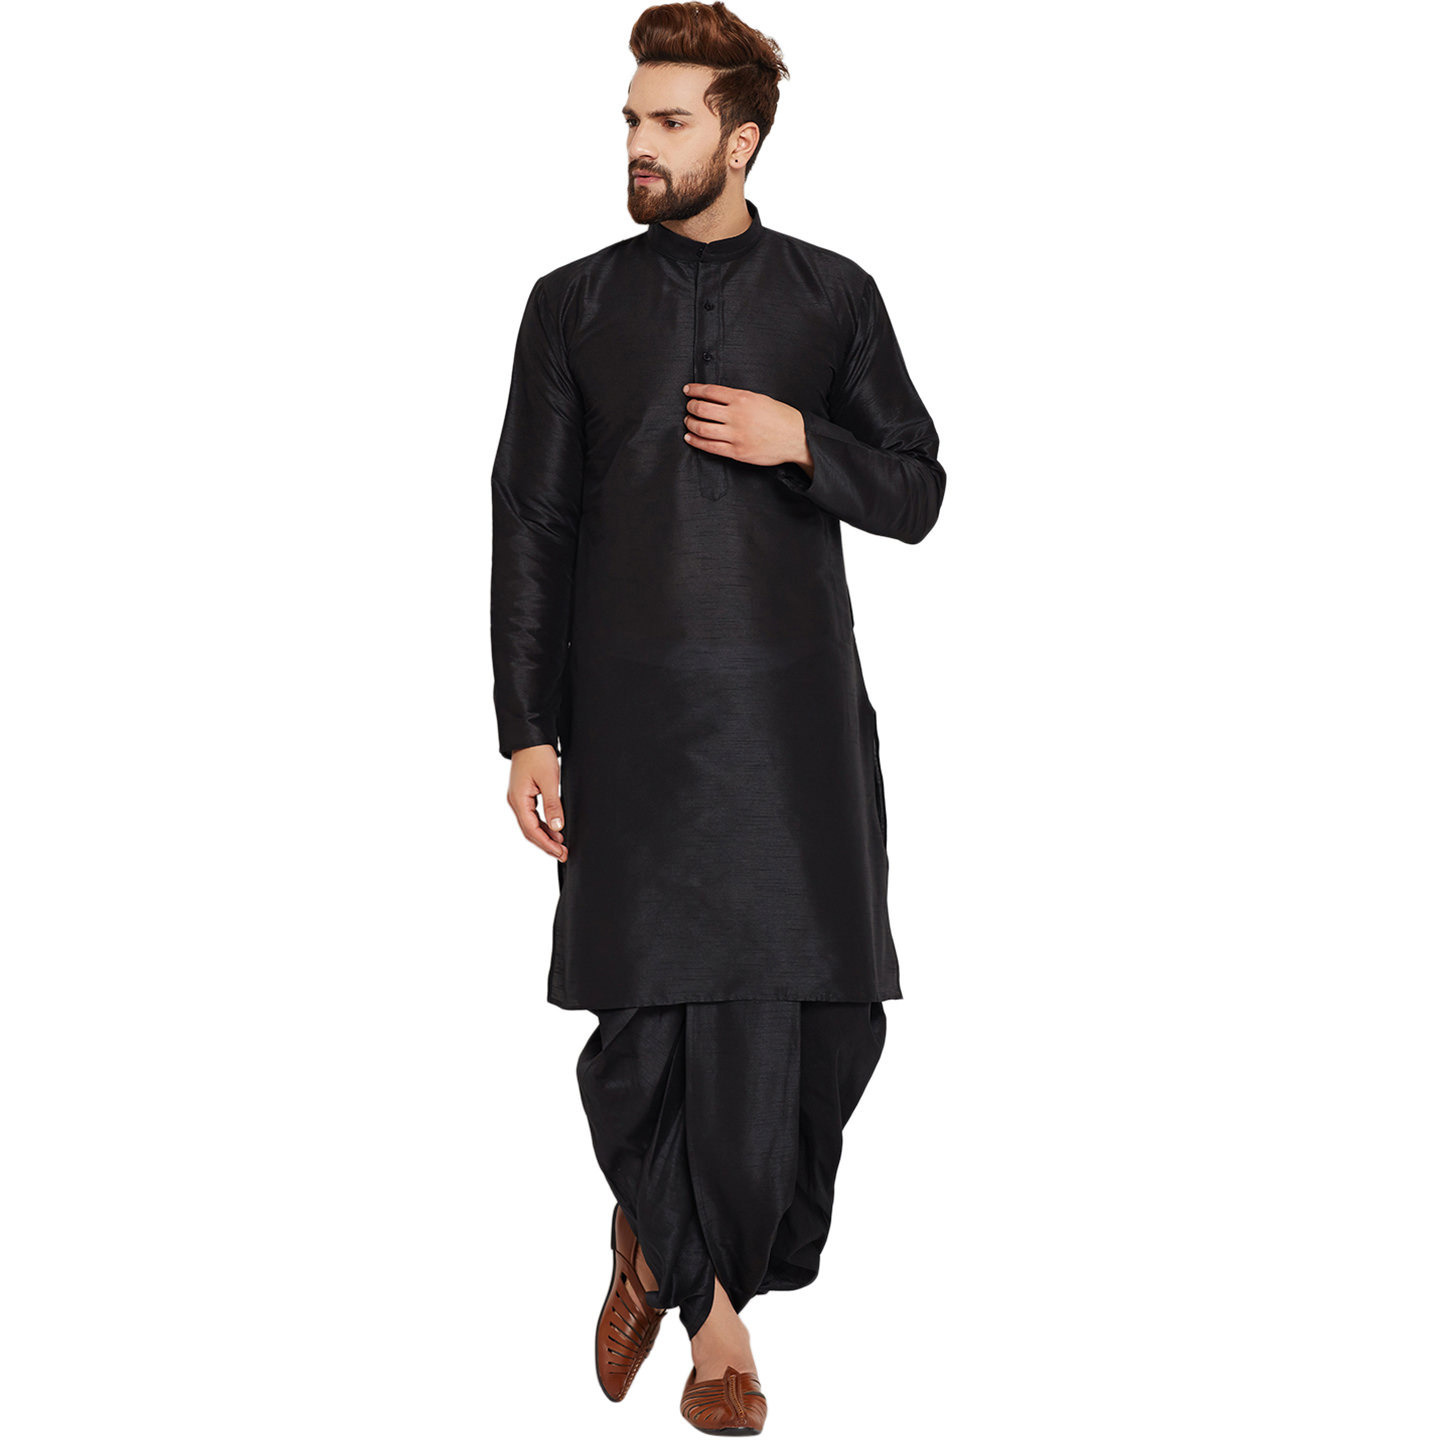 Men's Traditional Ethnic Wear Dupion Silk Black and Gold Plain DhotiKurta Set Regular Fit